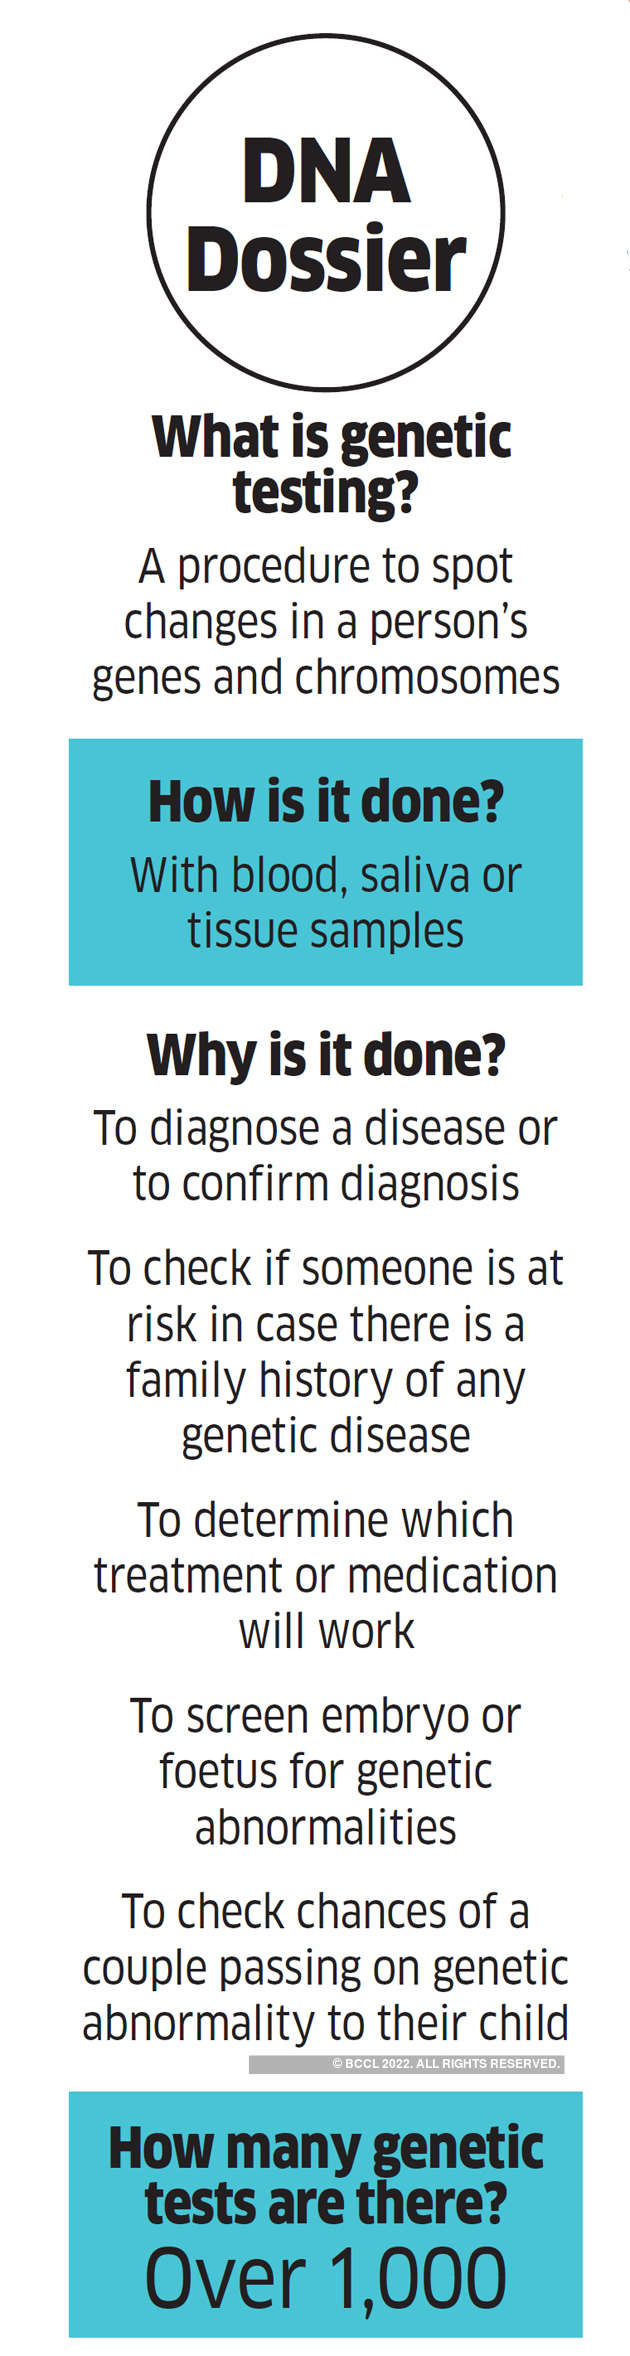 Genetic Tests In India Genetic Tests Gaining Popularity For Diagnosis Treatments In India